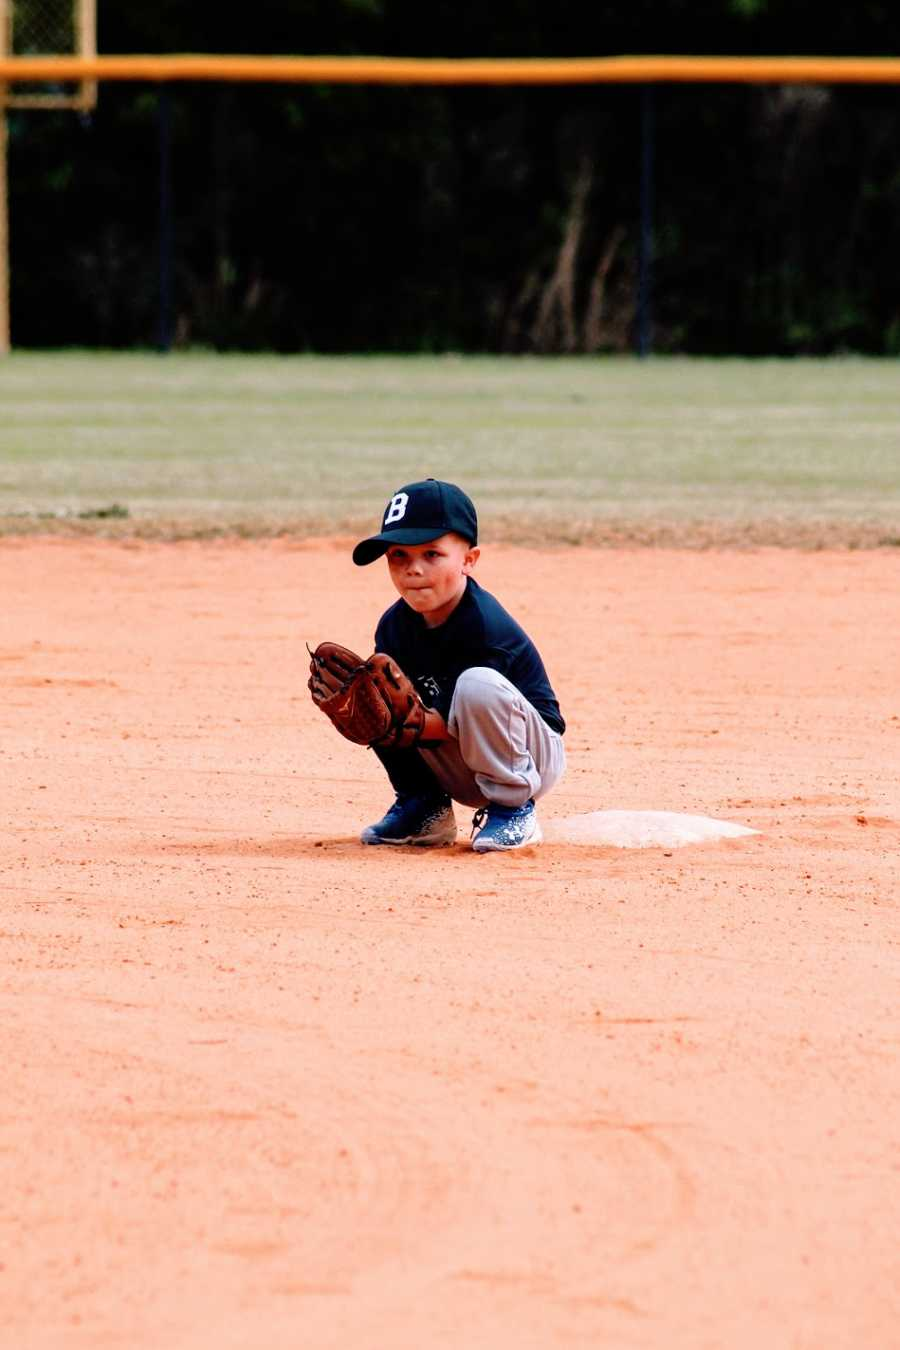 A little boy squats by the base while playing t-ball